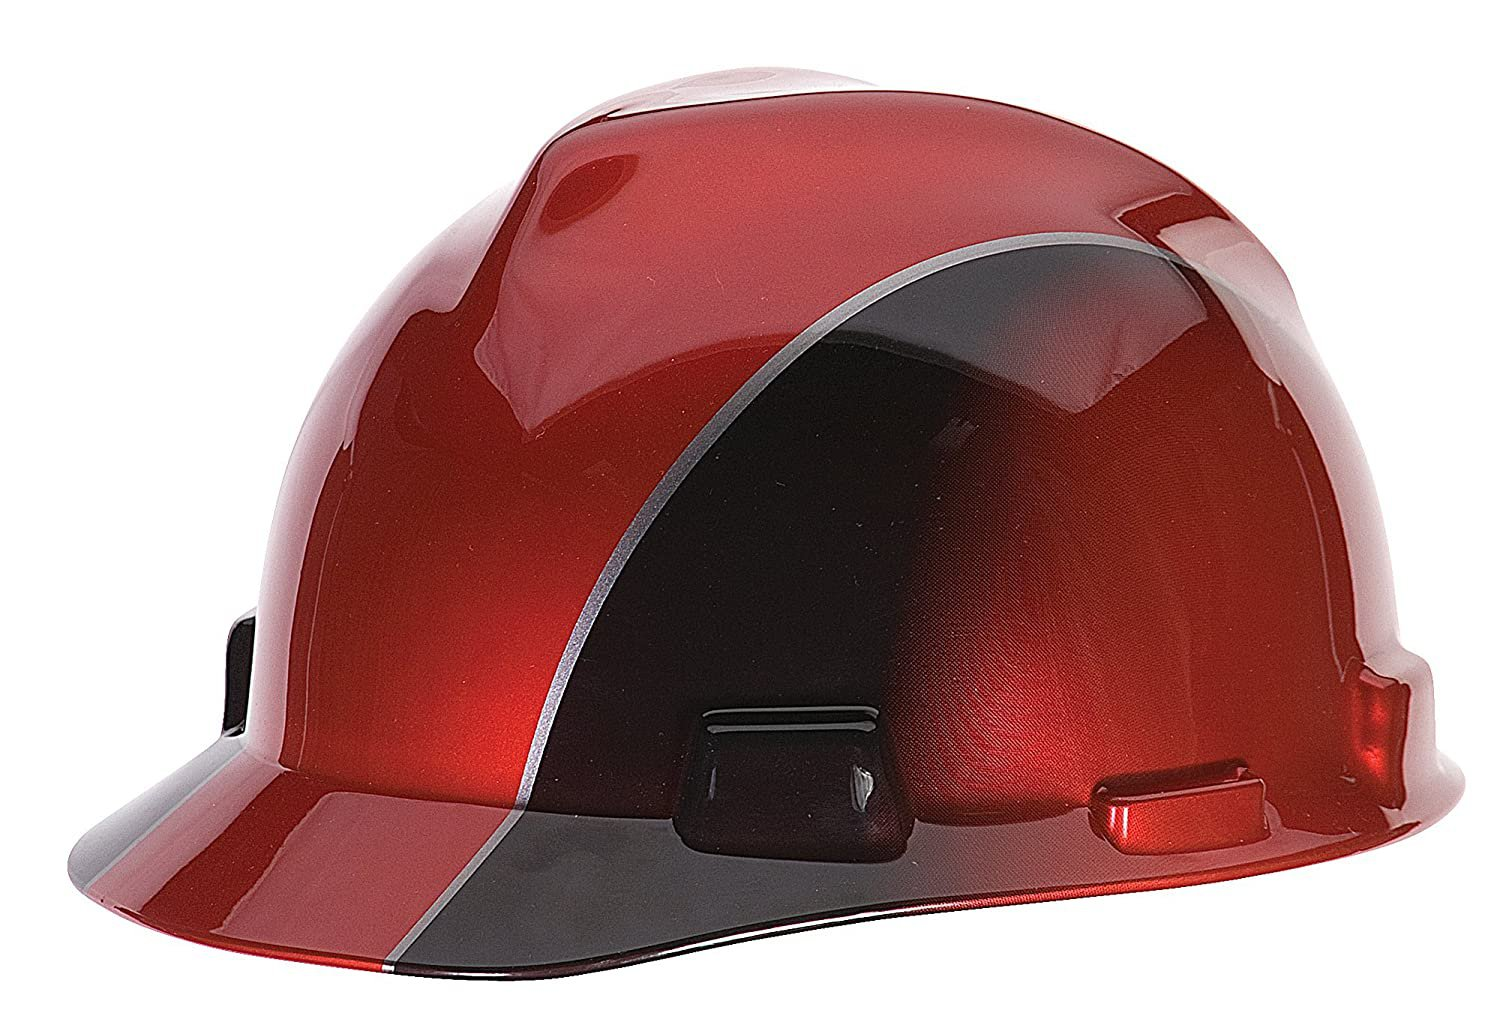 MSA 10101535 V-Gard Freedom Series Cap Slotted Protective Helmet, Red and Black Rally, Standard